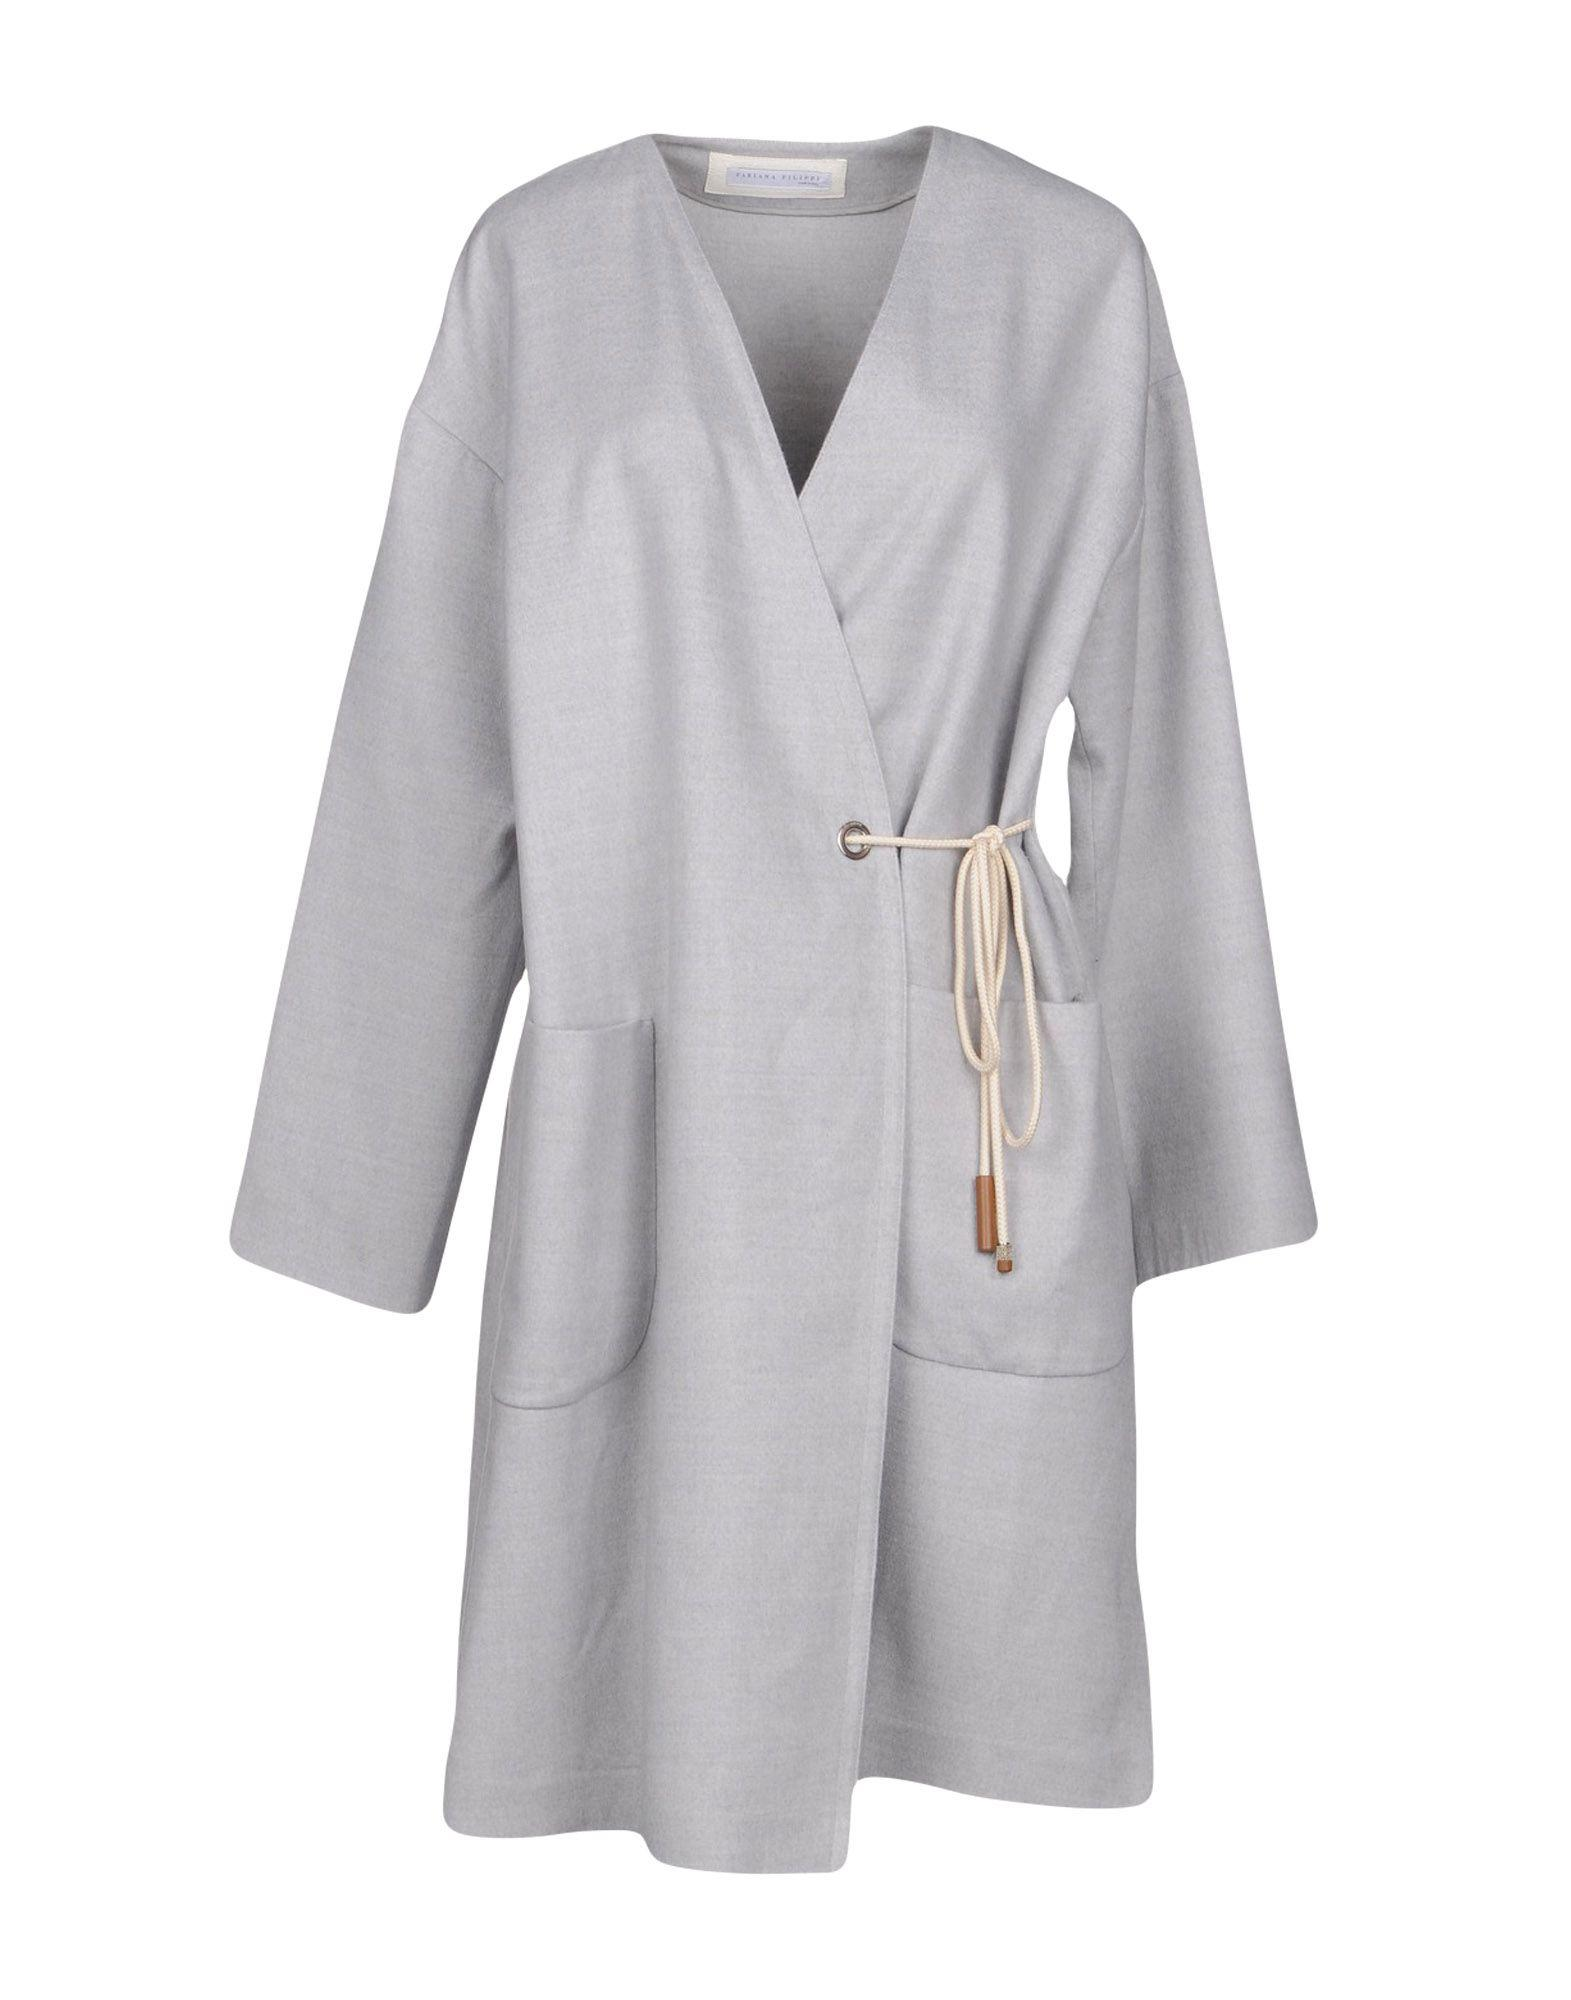 Fabiana Filippi Coat In Light Grey